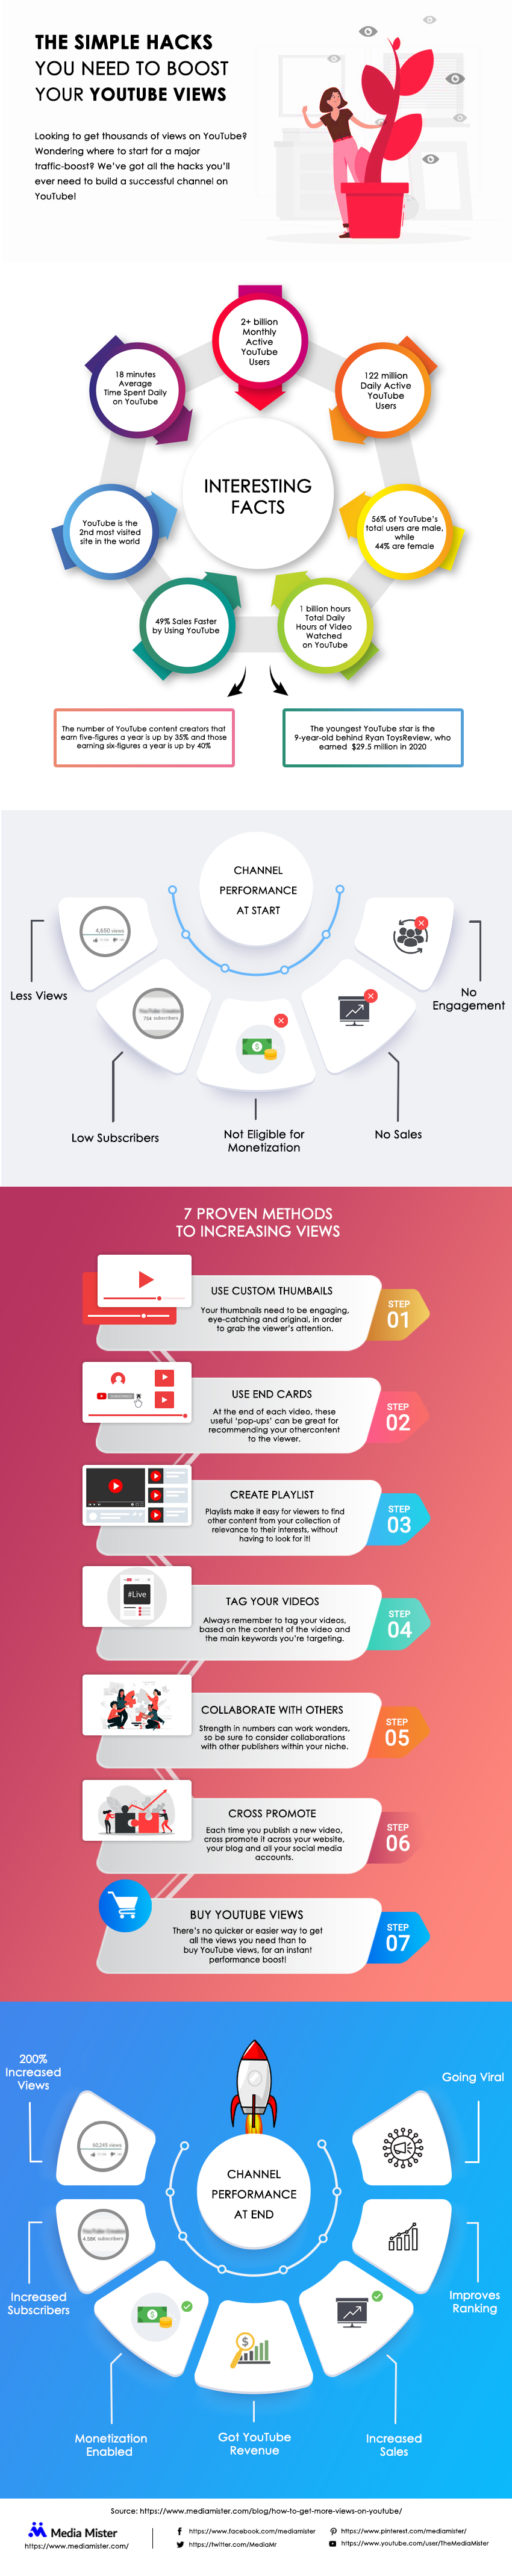 how to get views on youtube infographic